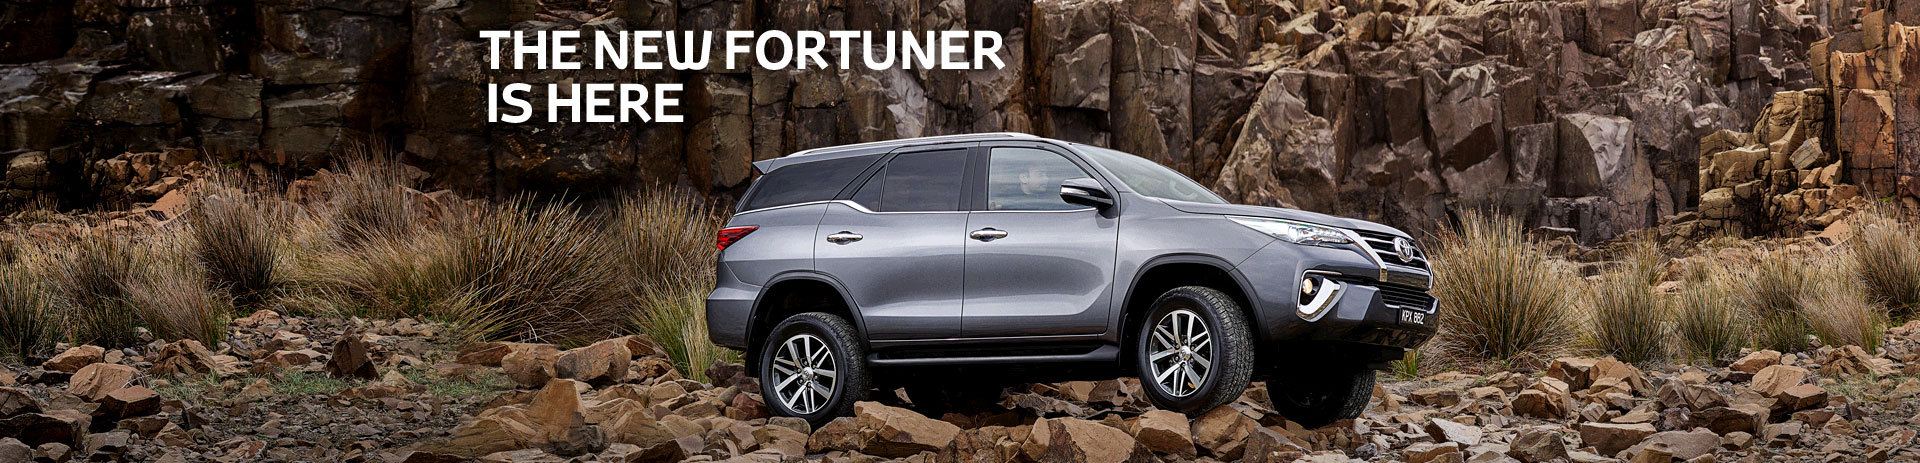 The new Fortuner is here